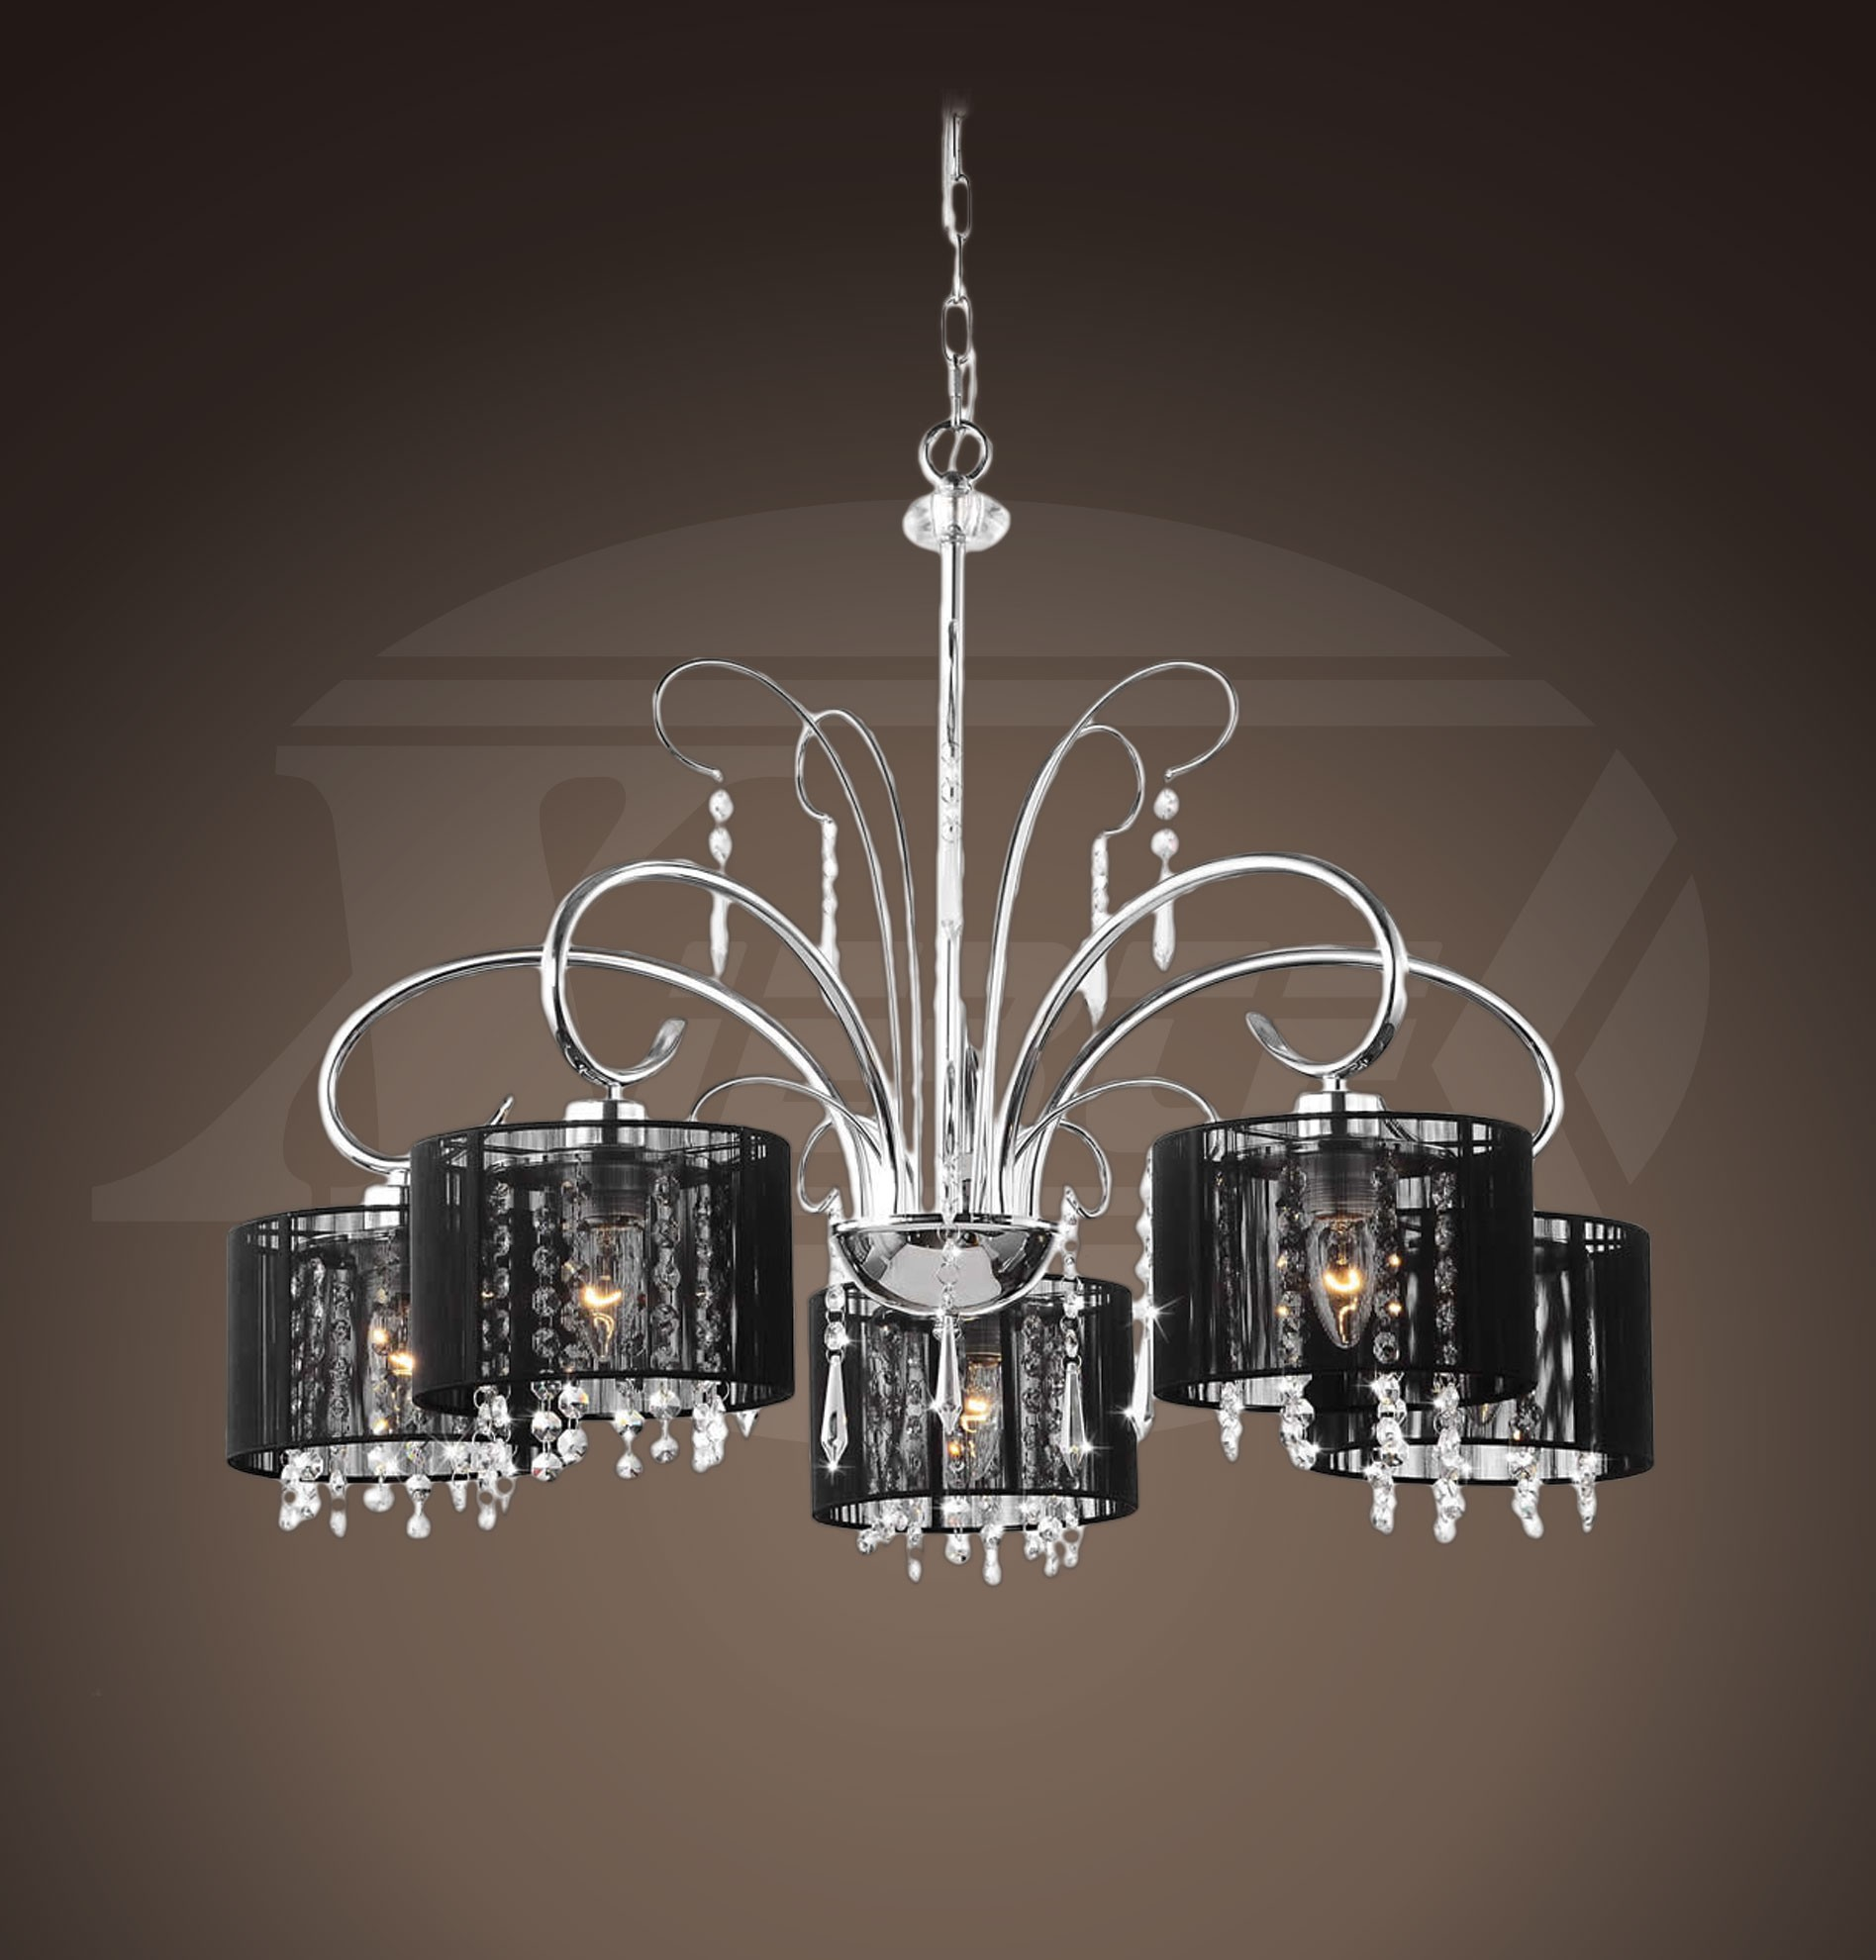 Aegean black shade 5 light chrome chandelier 255wx64h aegean black shade 5 light chrome chandelier 255wx64h xtkl661hlj295x mozeypictures